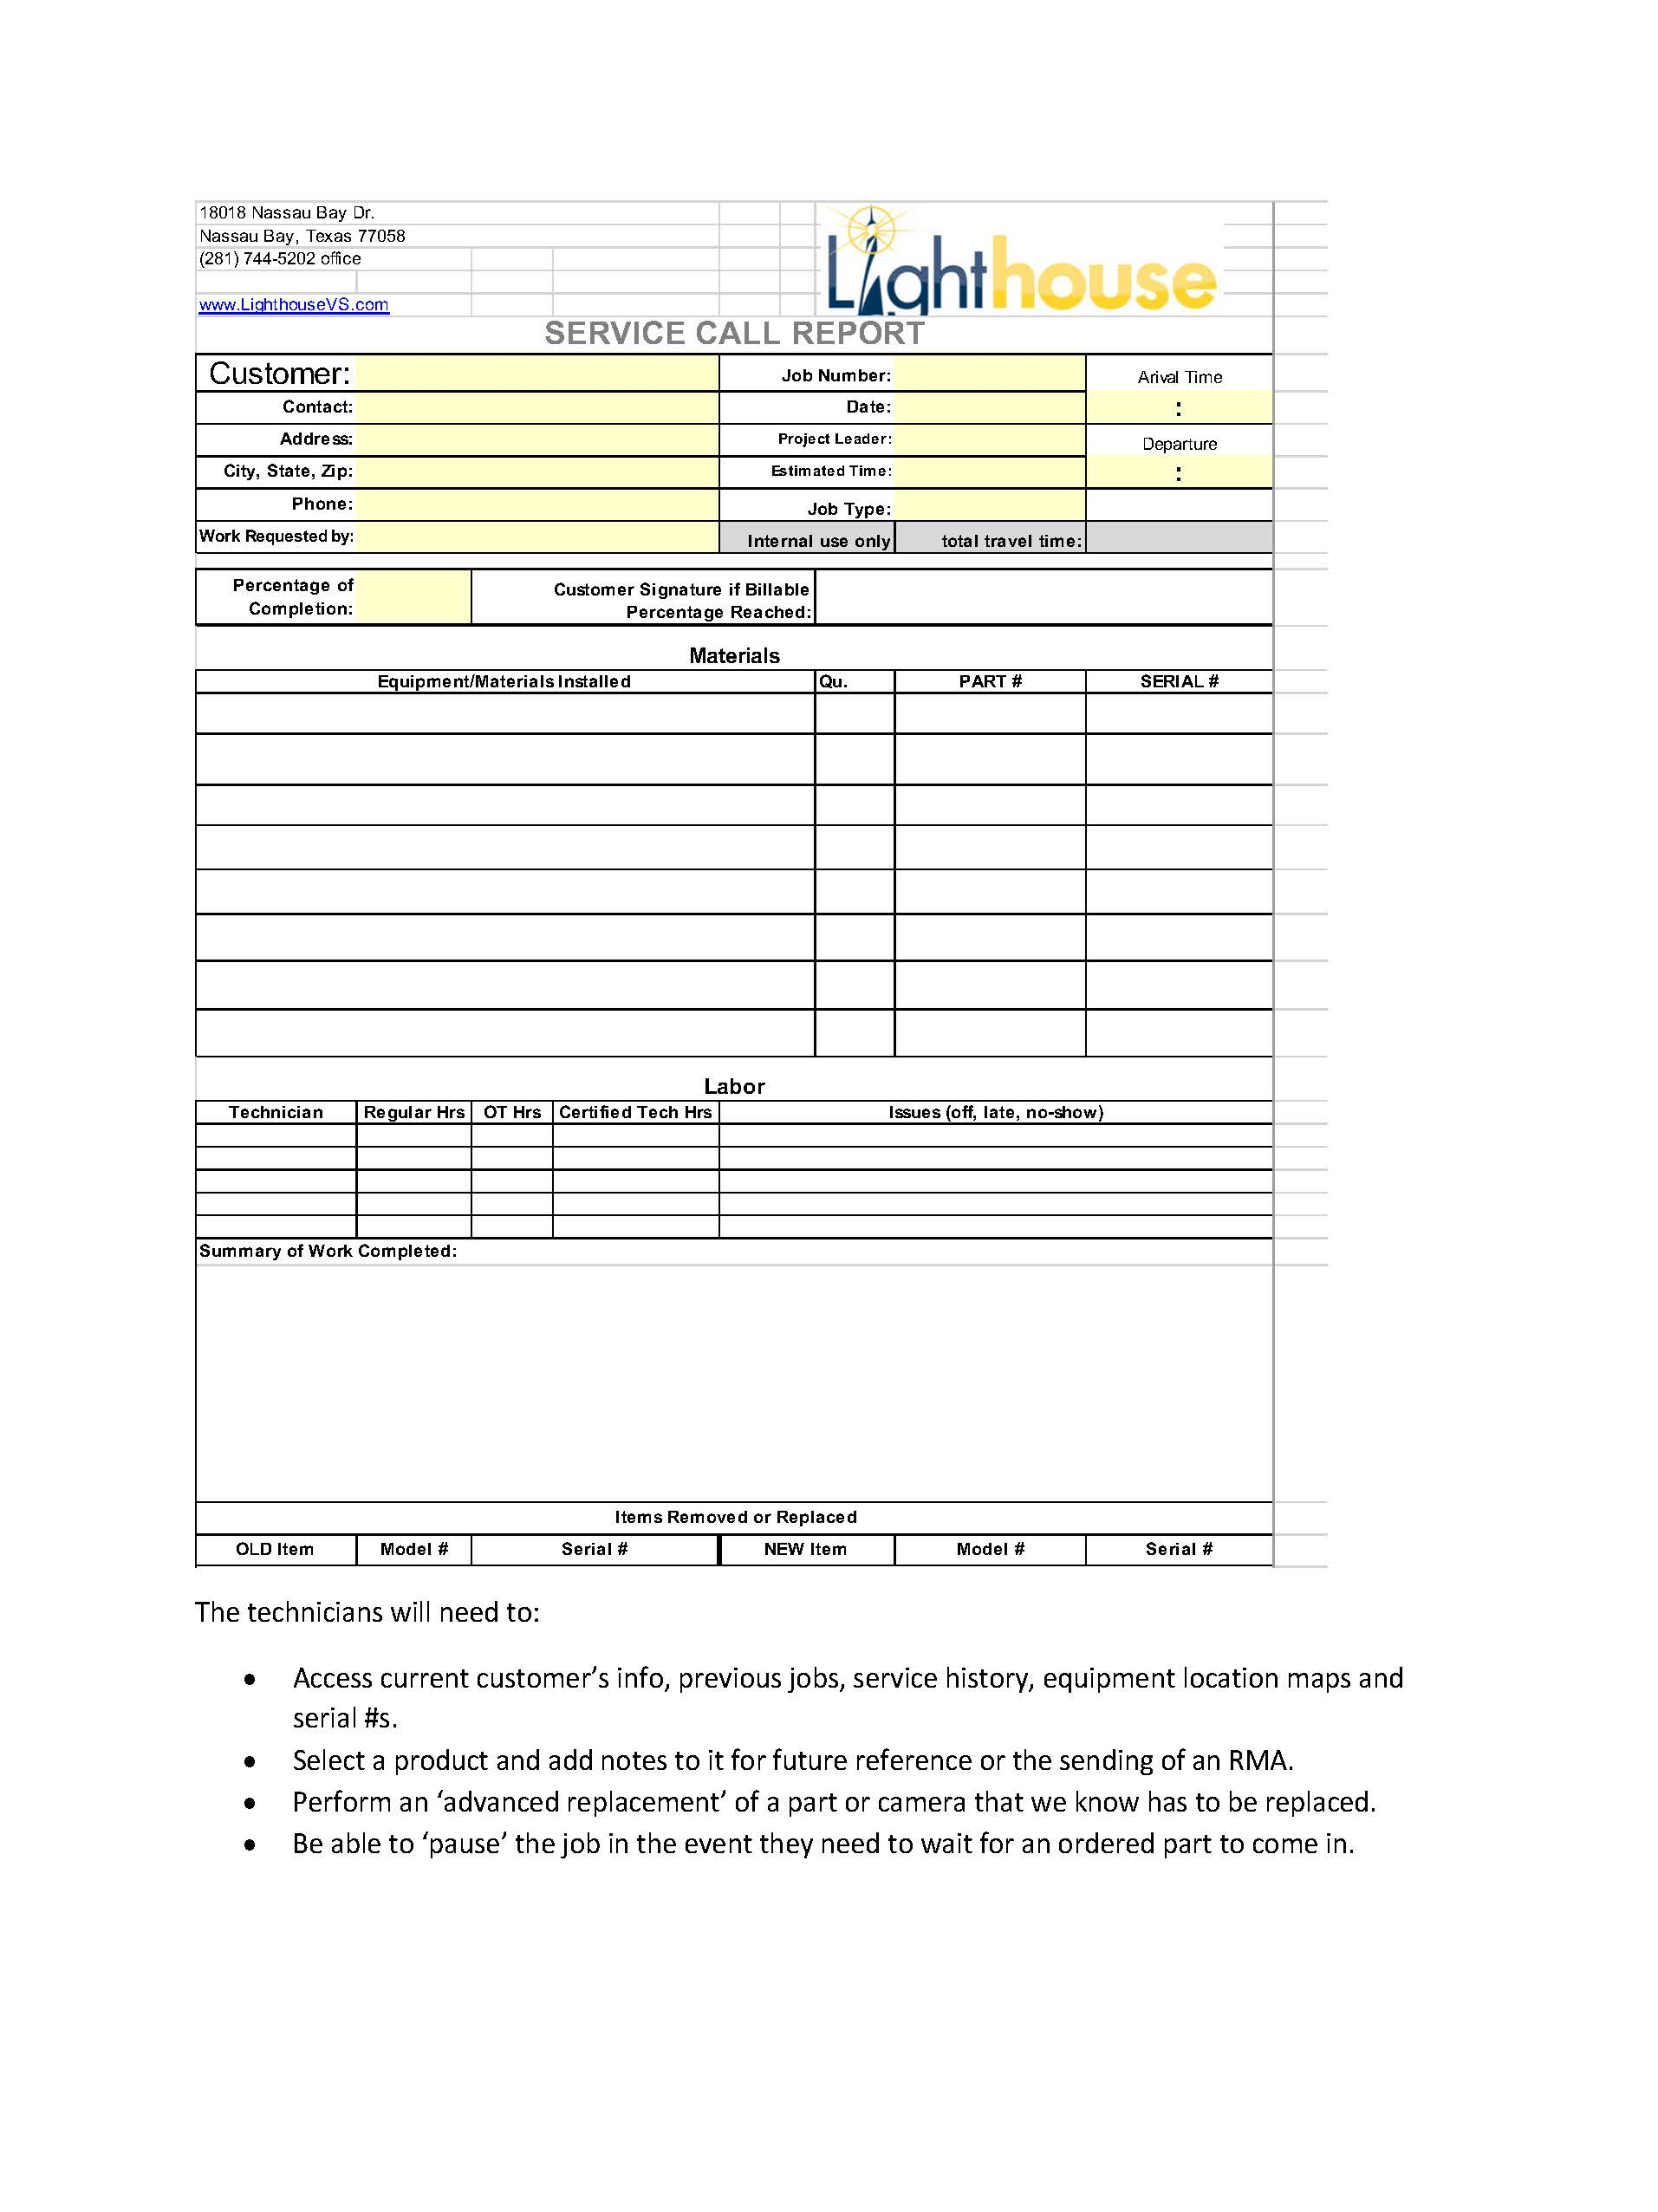 LVS Software_Page_10